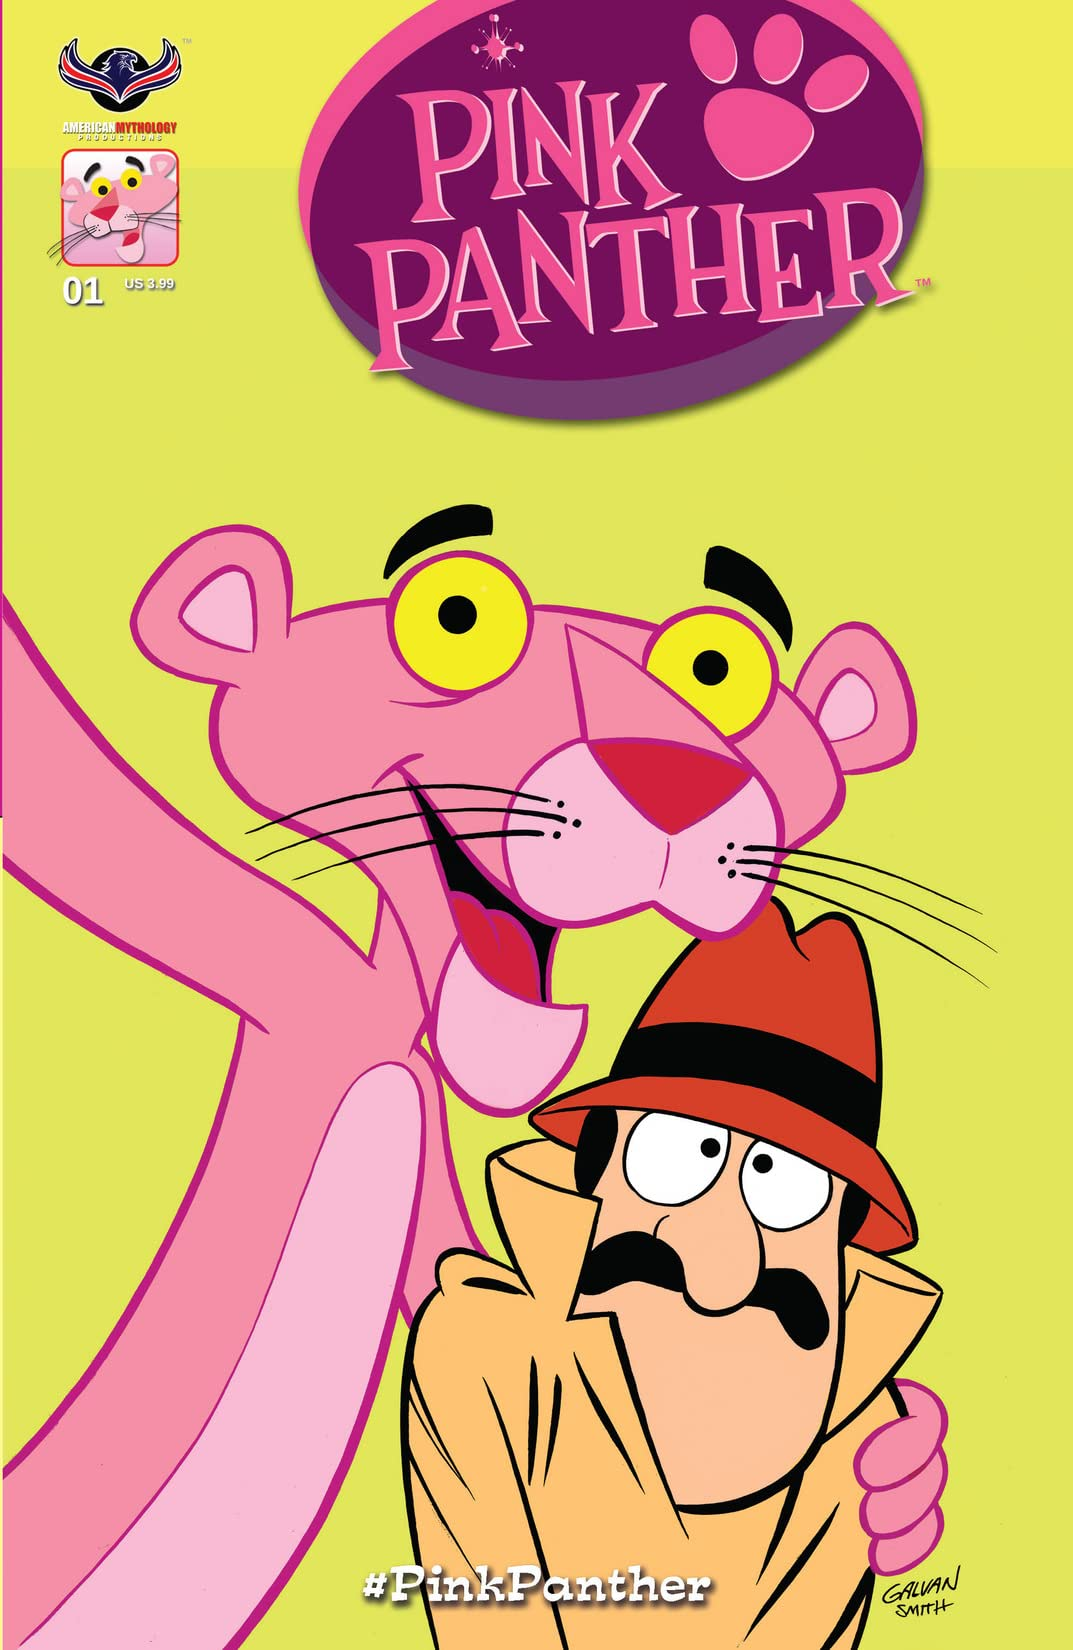 The Pink Panther #1